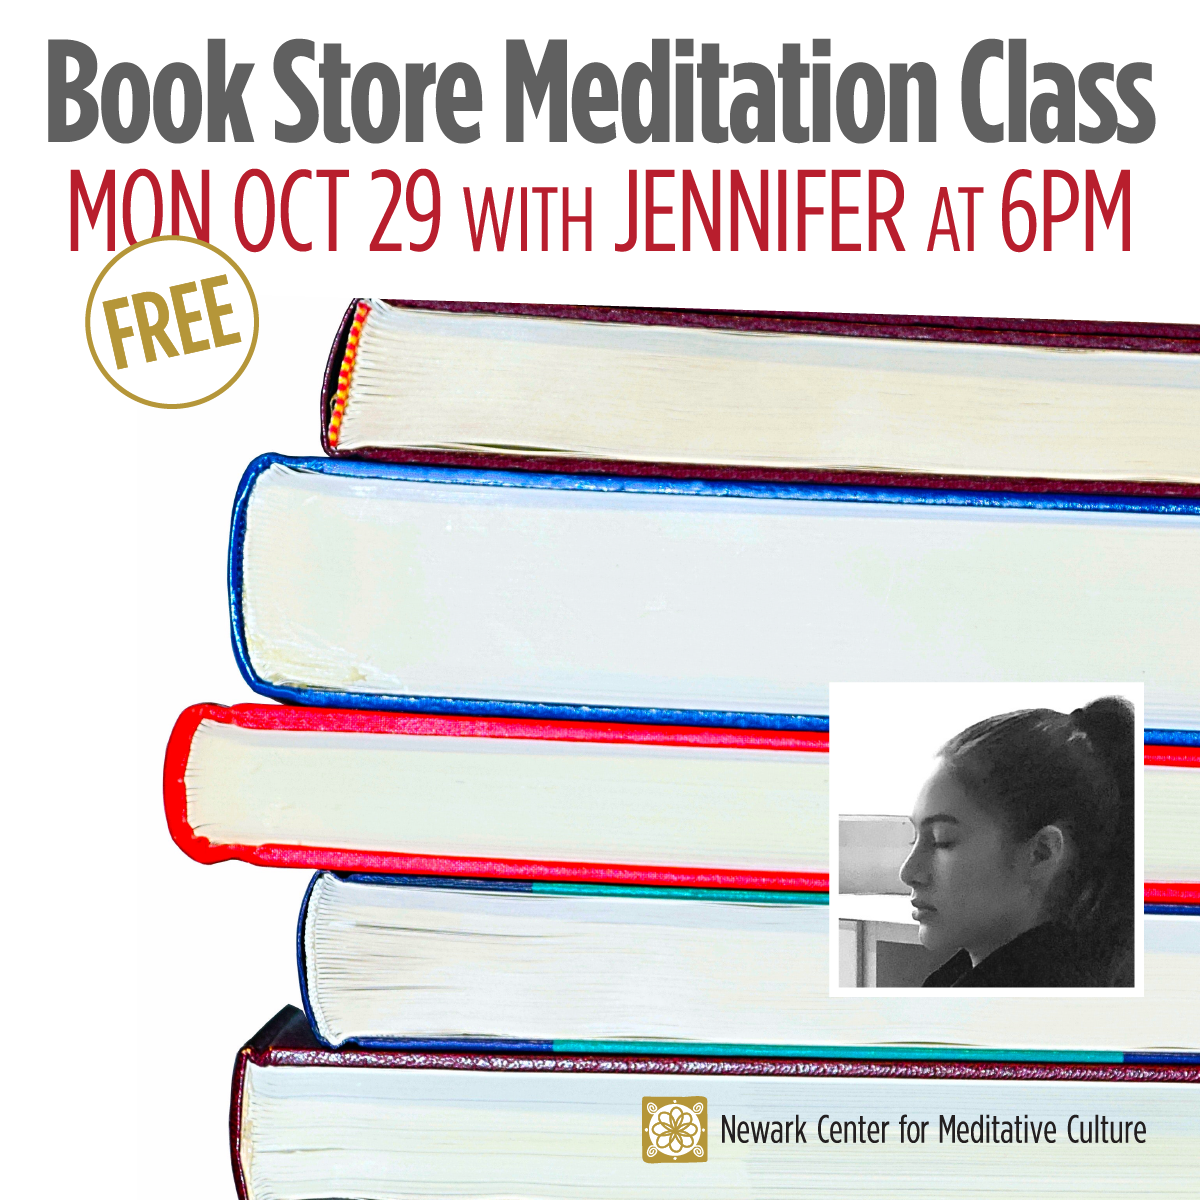 Book Store Meditation Class.png